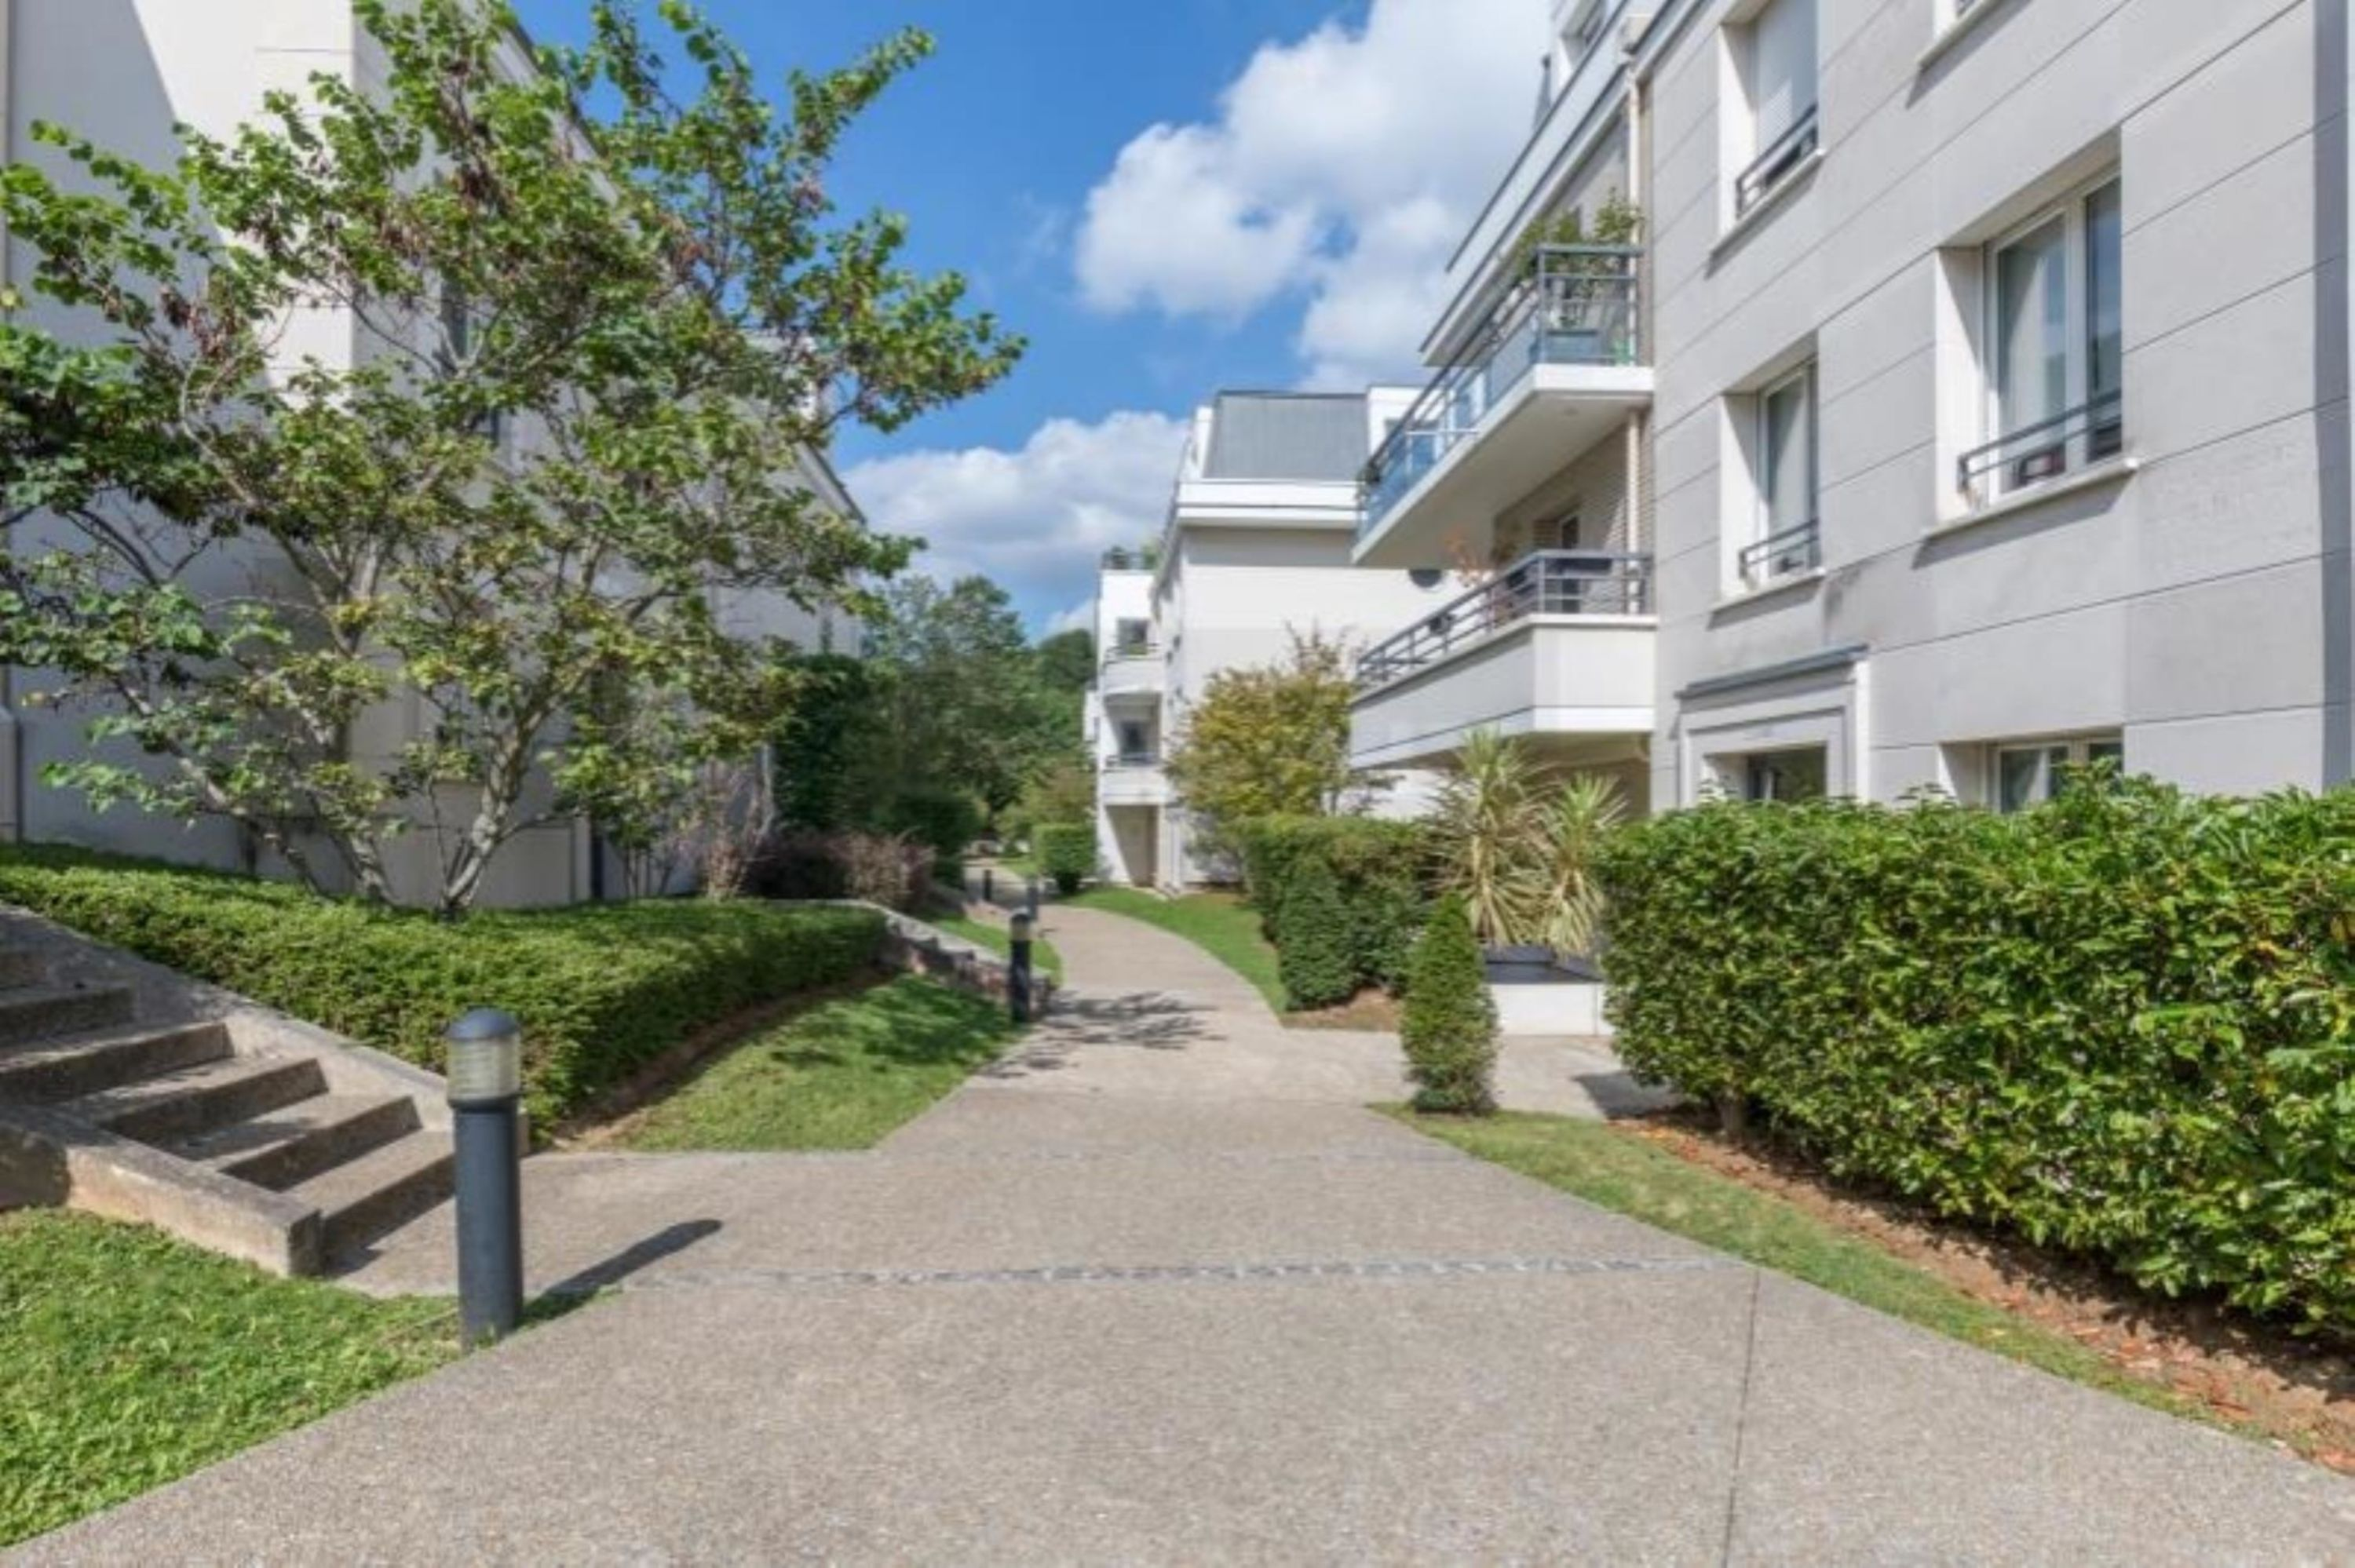 agence immobilière sevres 92 le chesnay 78 achat vente location appartement maison immobilier LMHT ANF RNVUSFYI